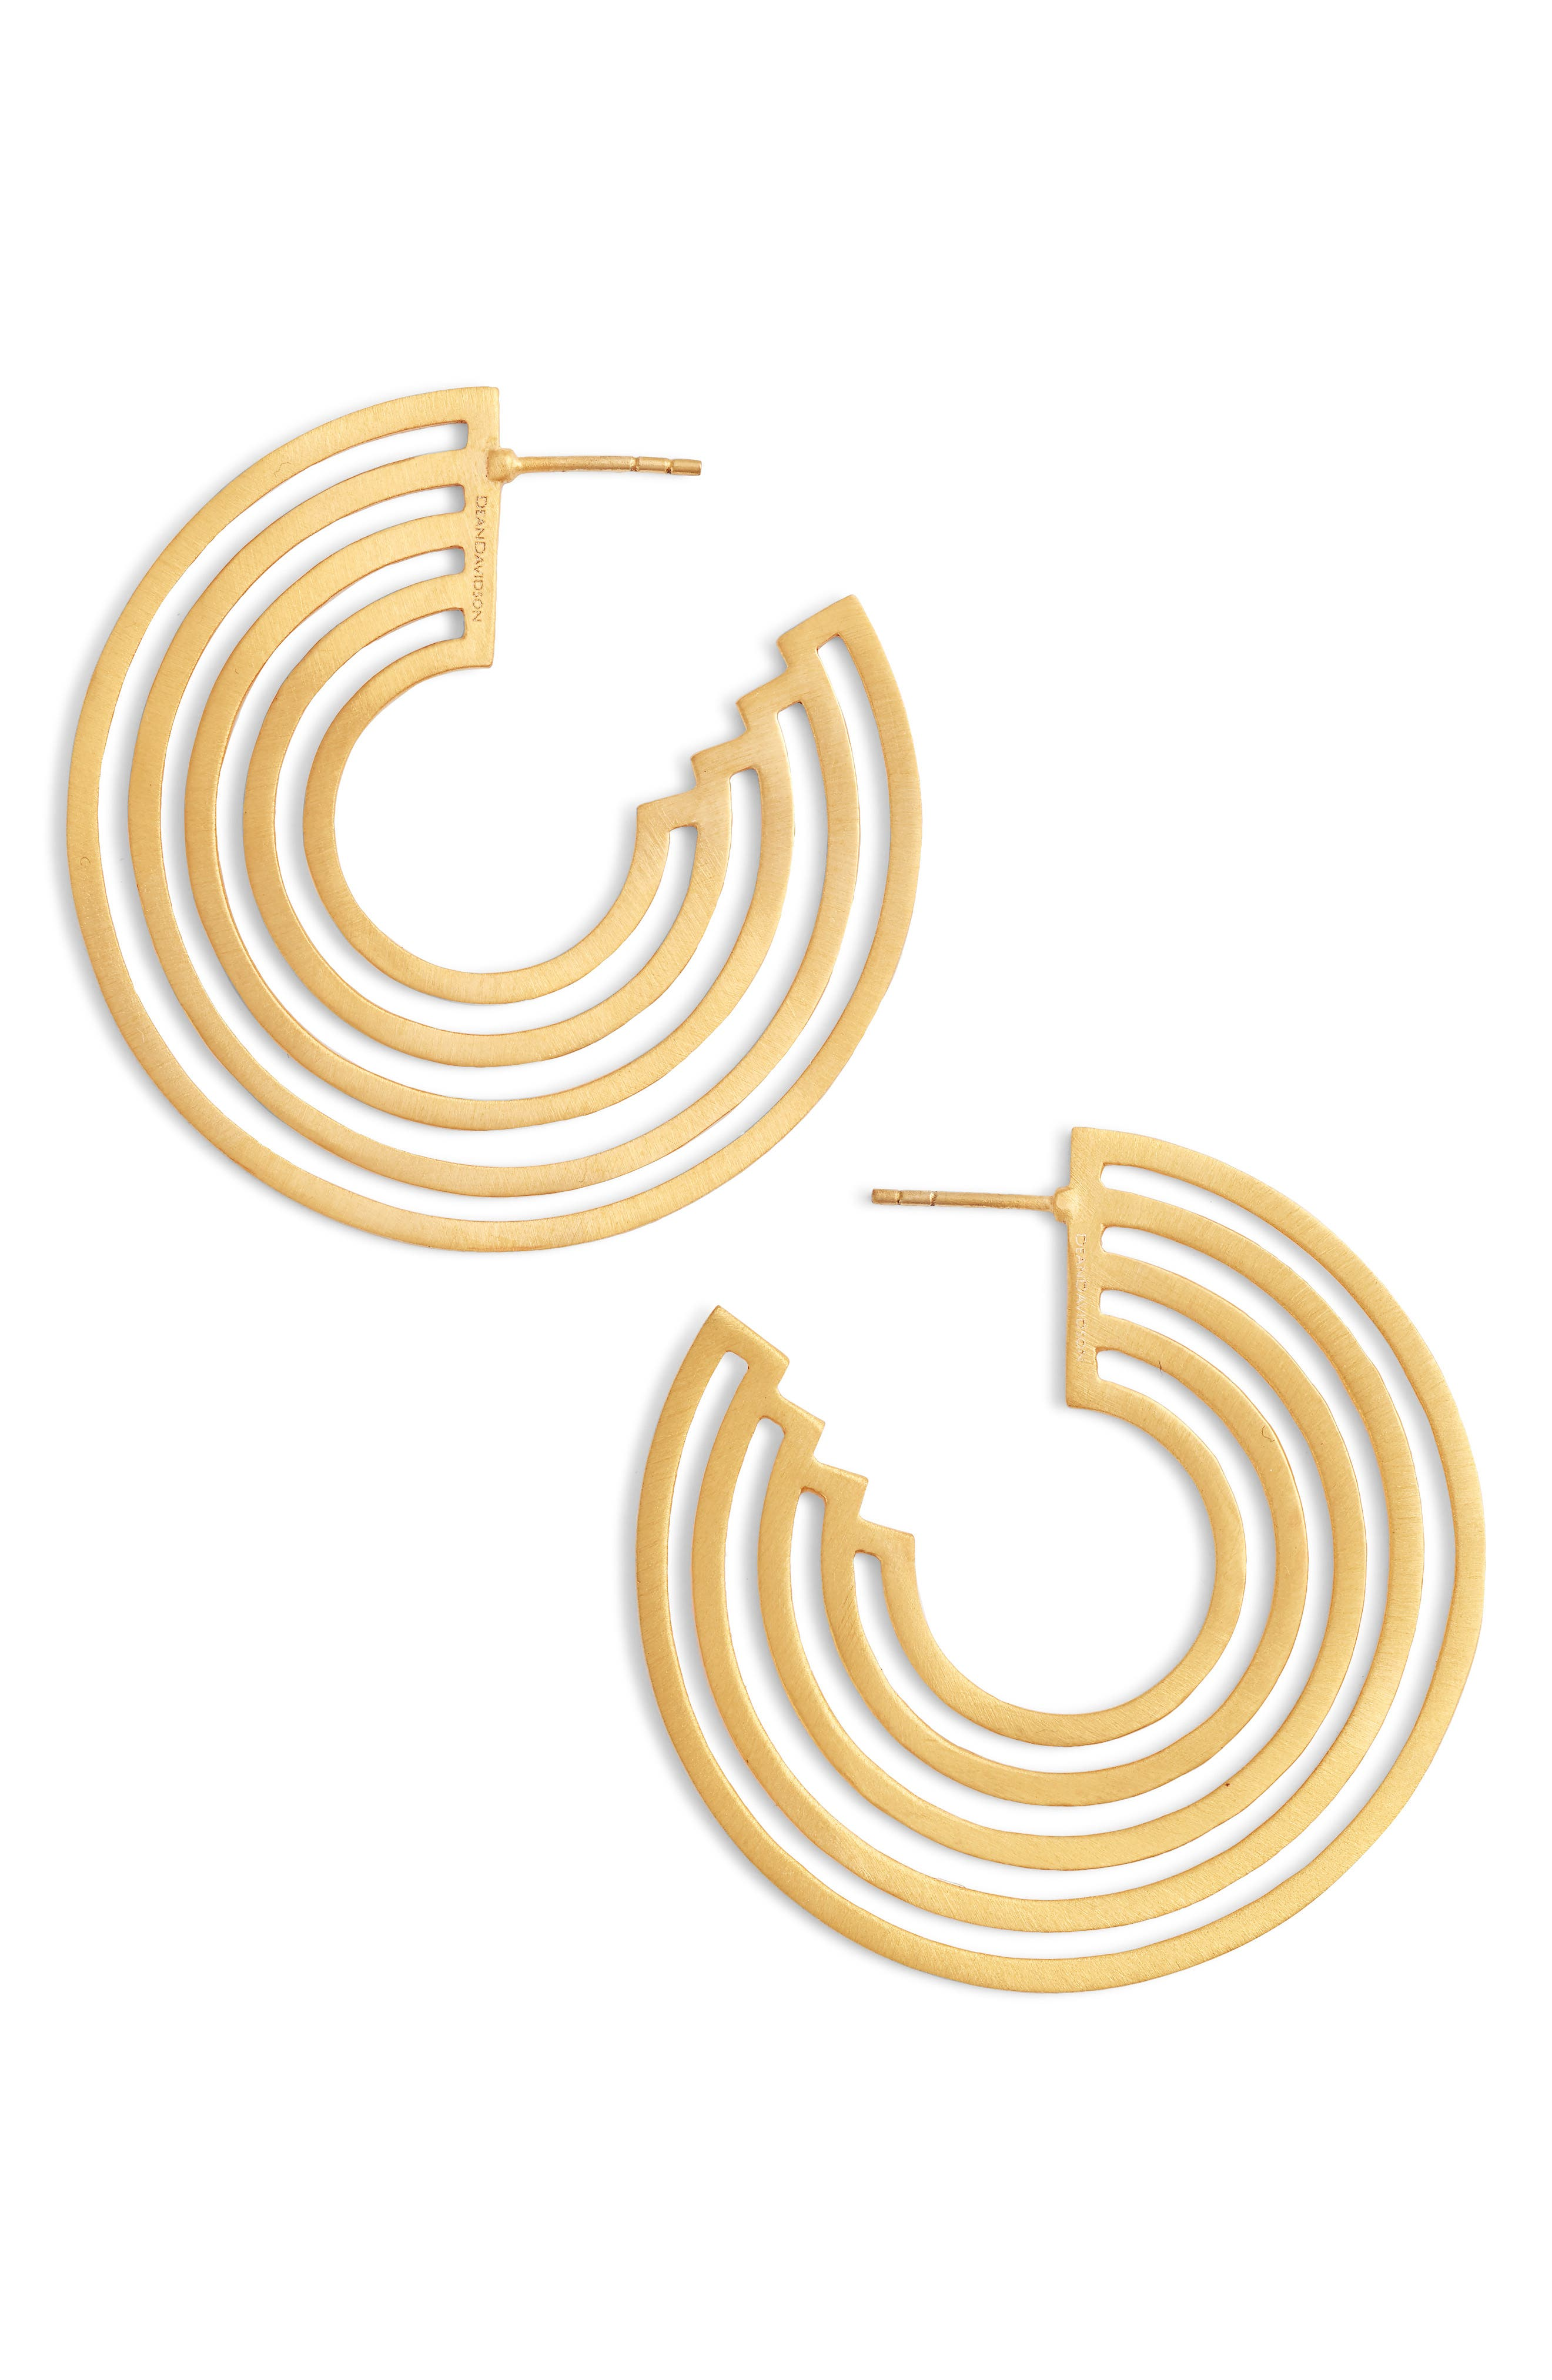 Solar Concentric Hoop Earrings,                             Main thumbnail 1, color,                             710